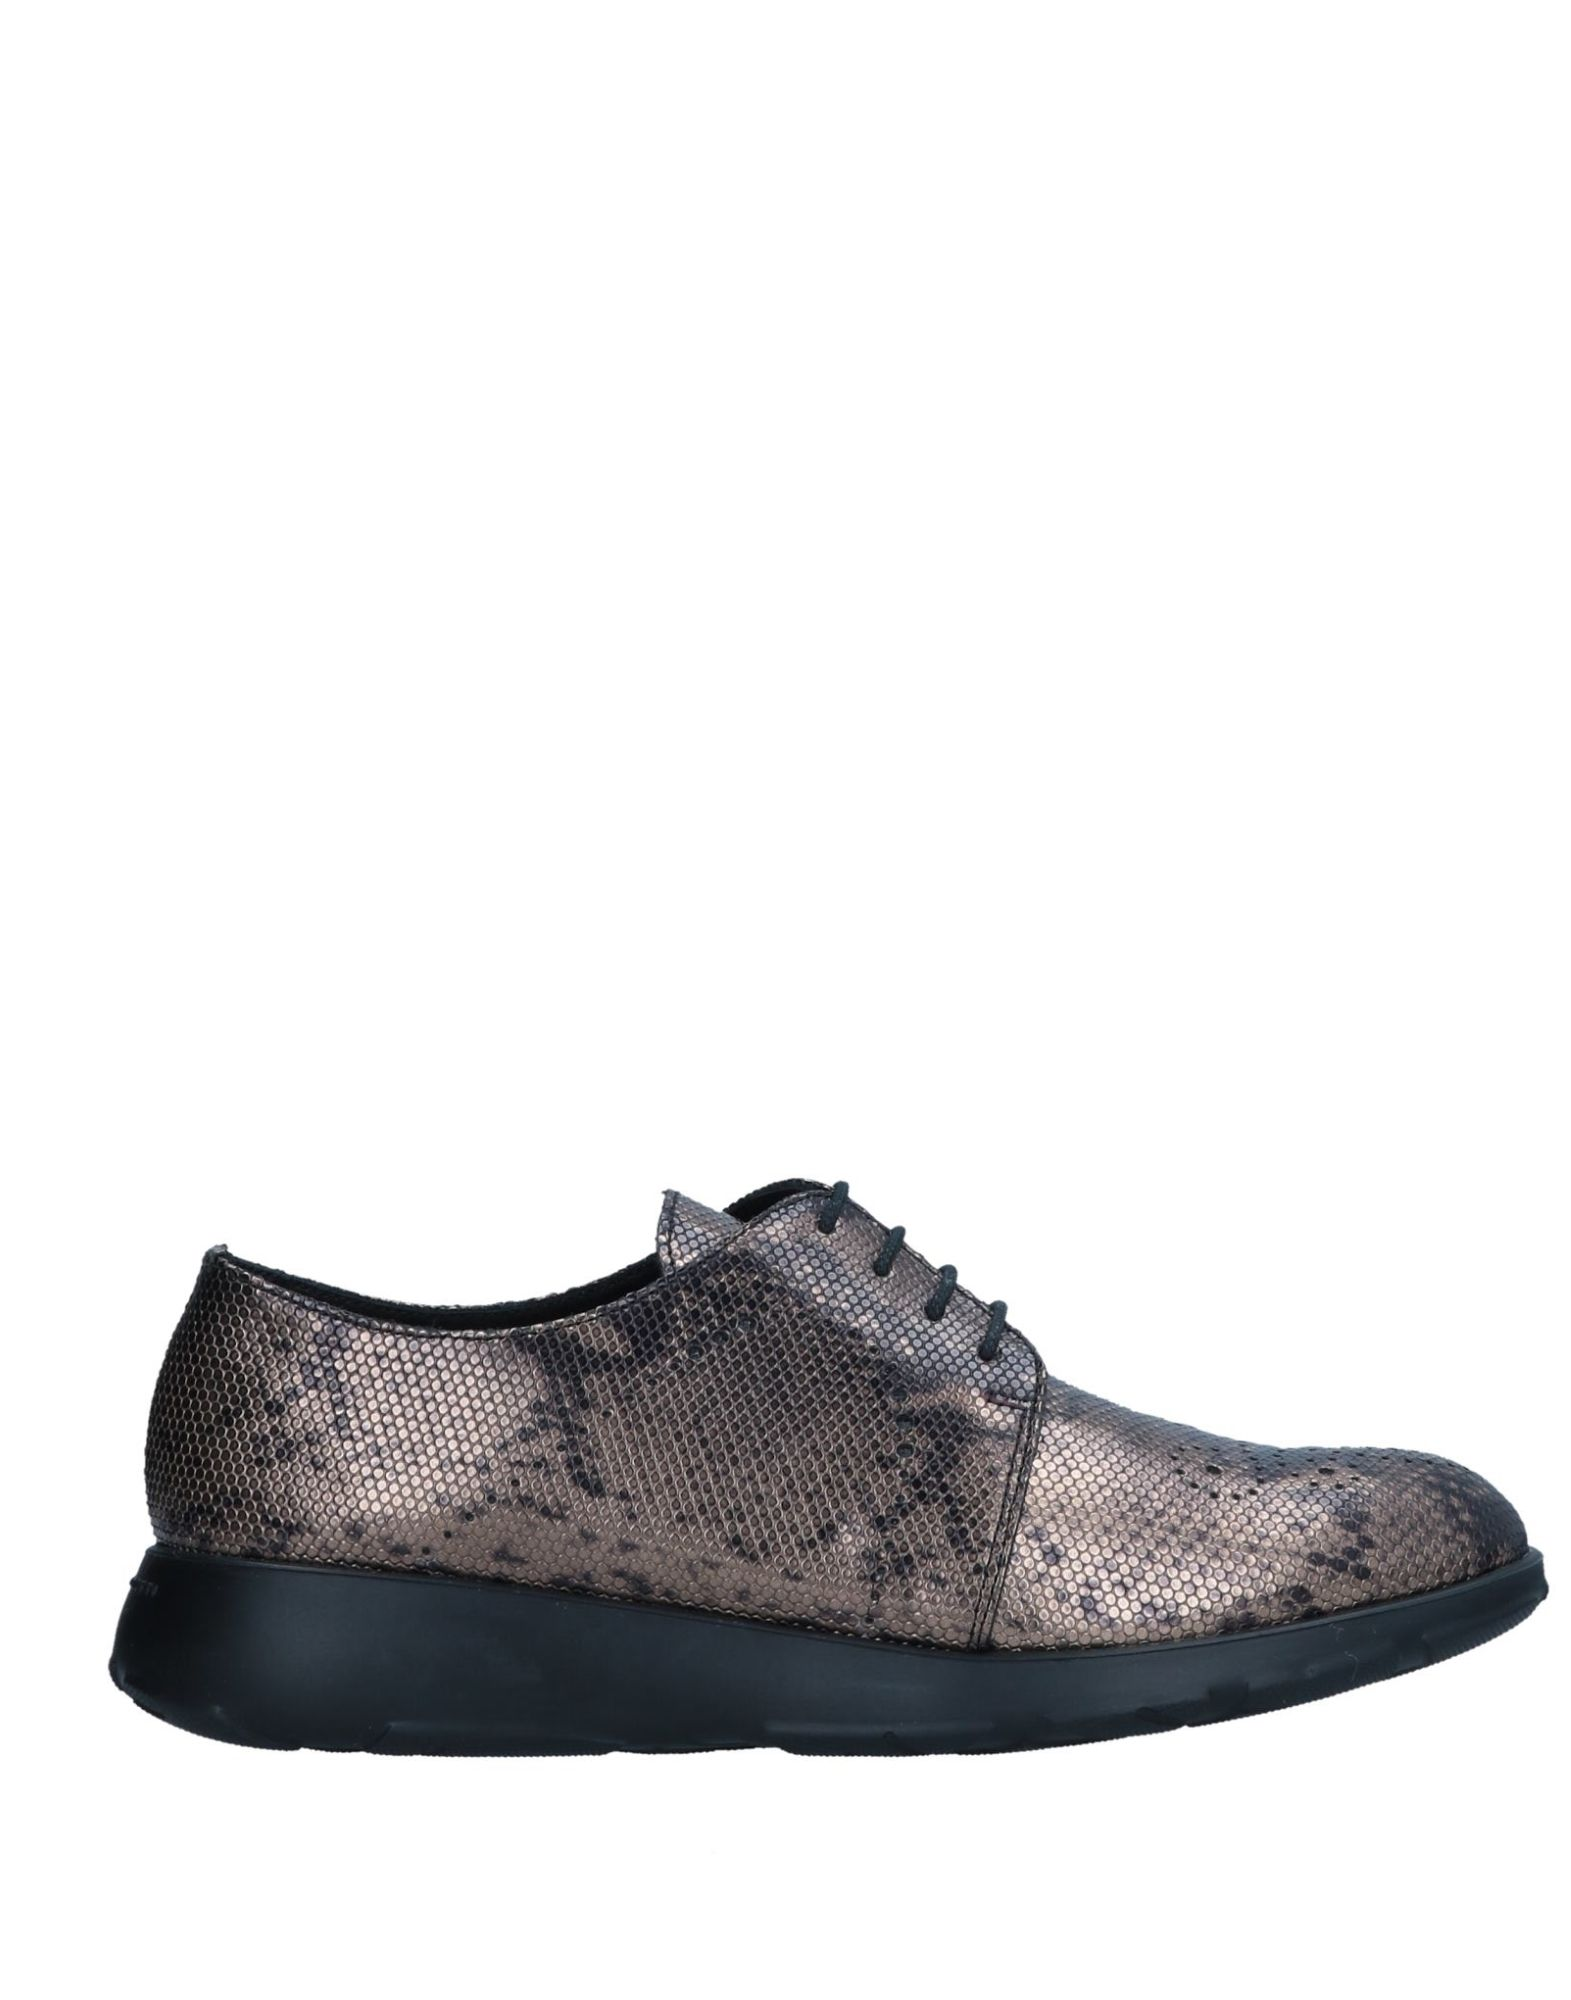 Fratelli Rossetti Sneakers - Women on Fratelli Rossetti Sneakers online on Women  Canada - 11550063QH e87bcc